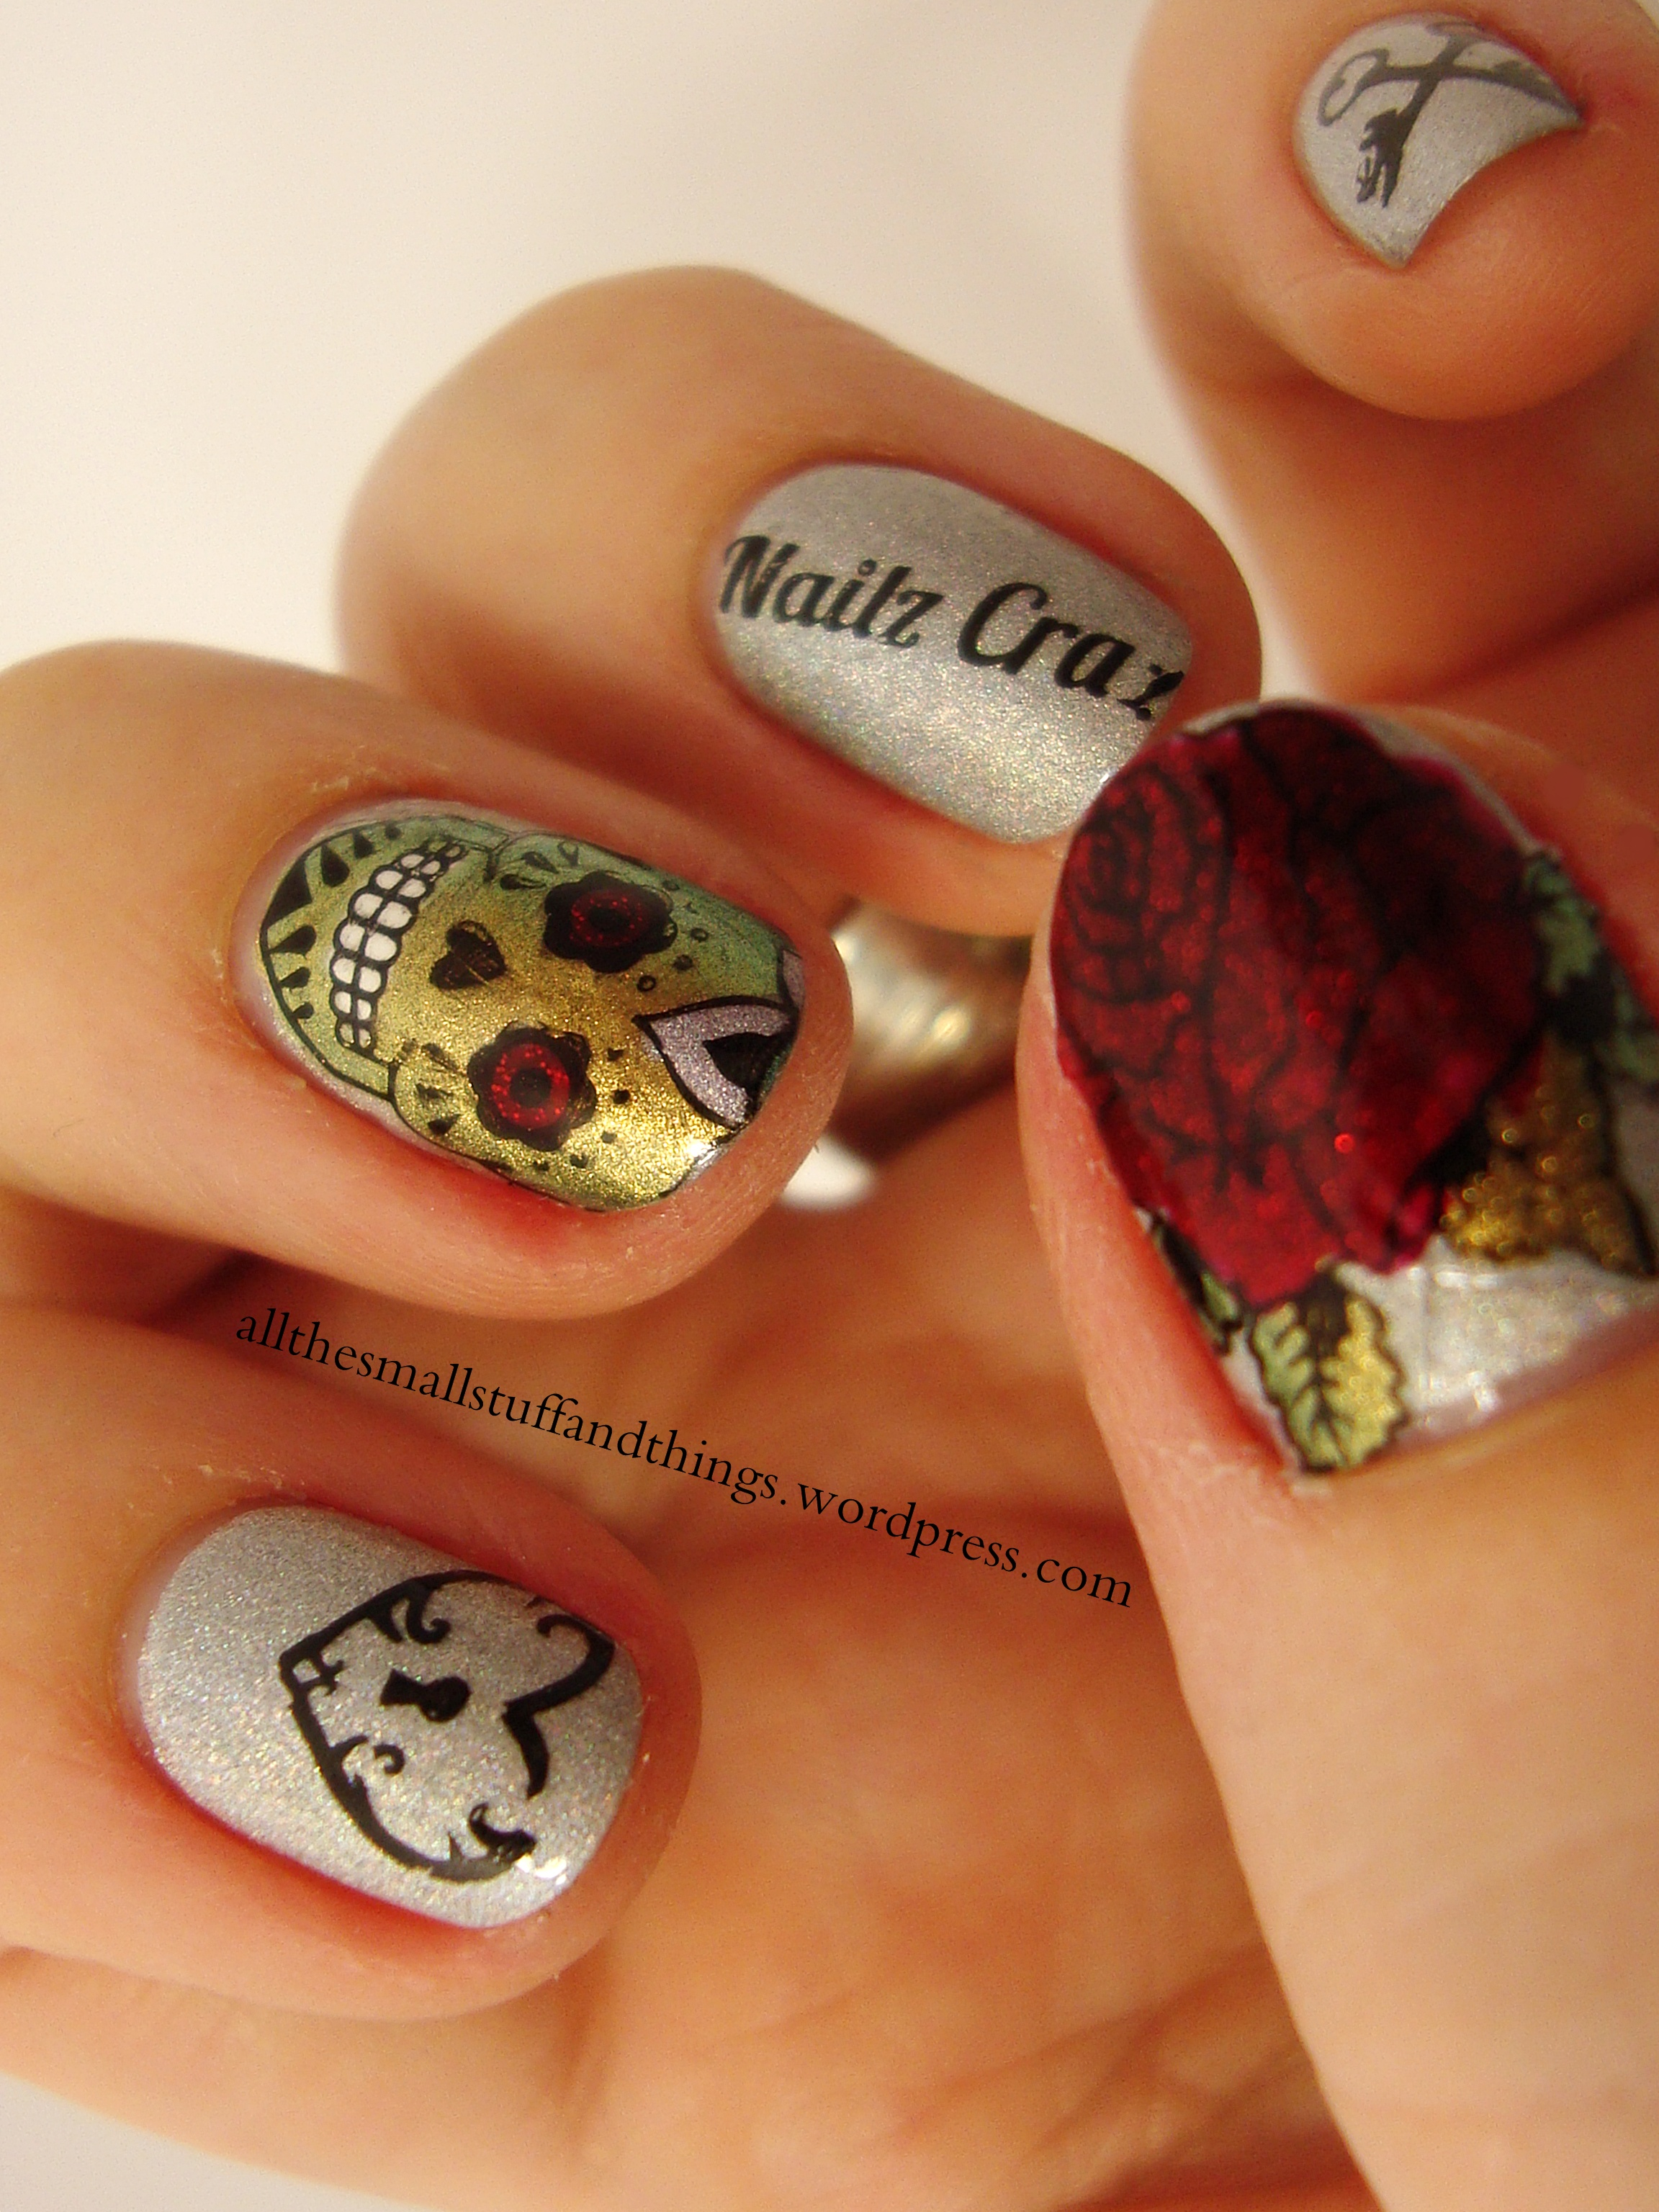 Nail stamping plates by Nailz Craze [Update] | all the small stuff ...